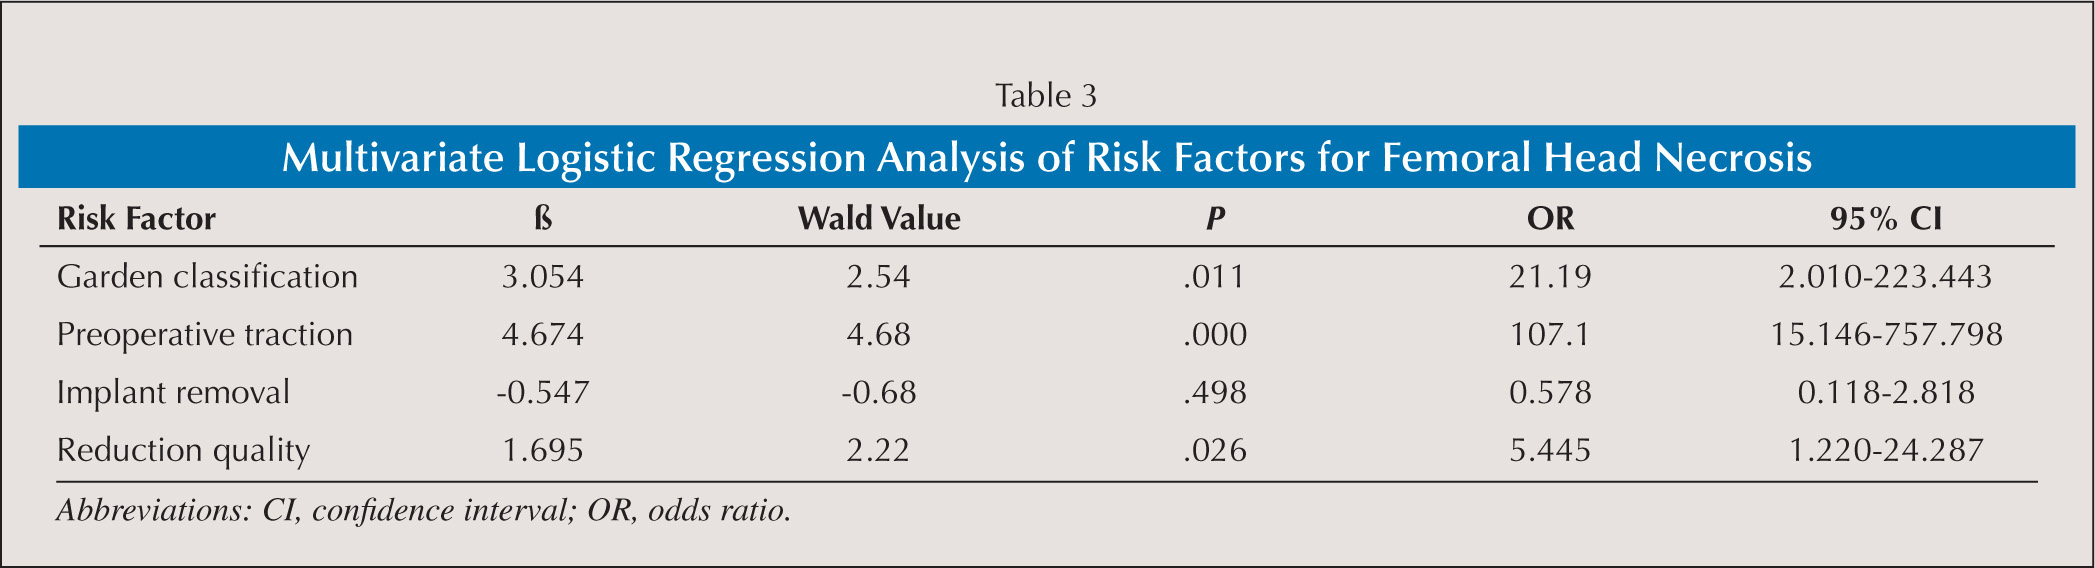 Multivariate Logistic Regression Analysis of Risk Factors for Femoral Head Necrosis